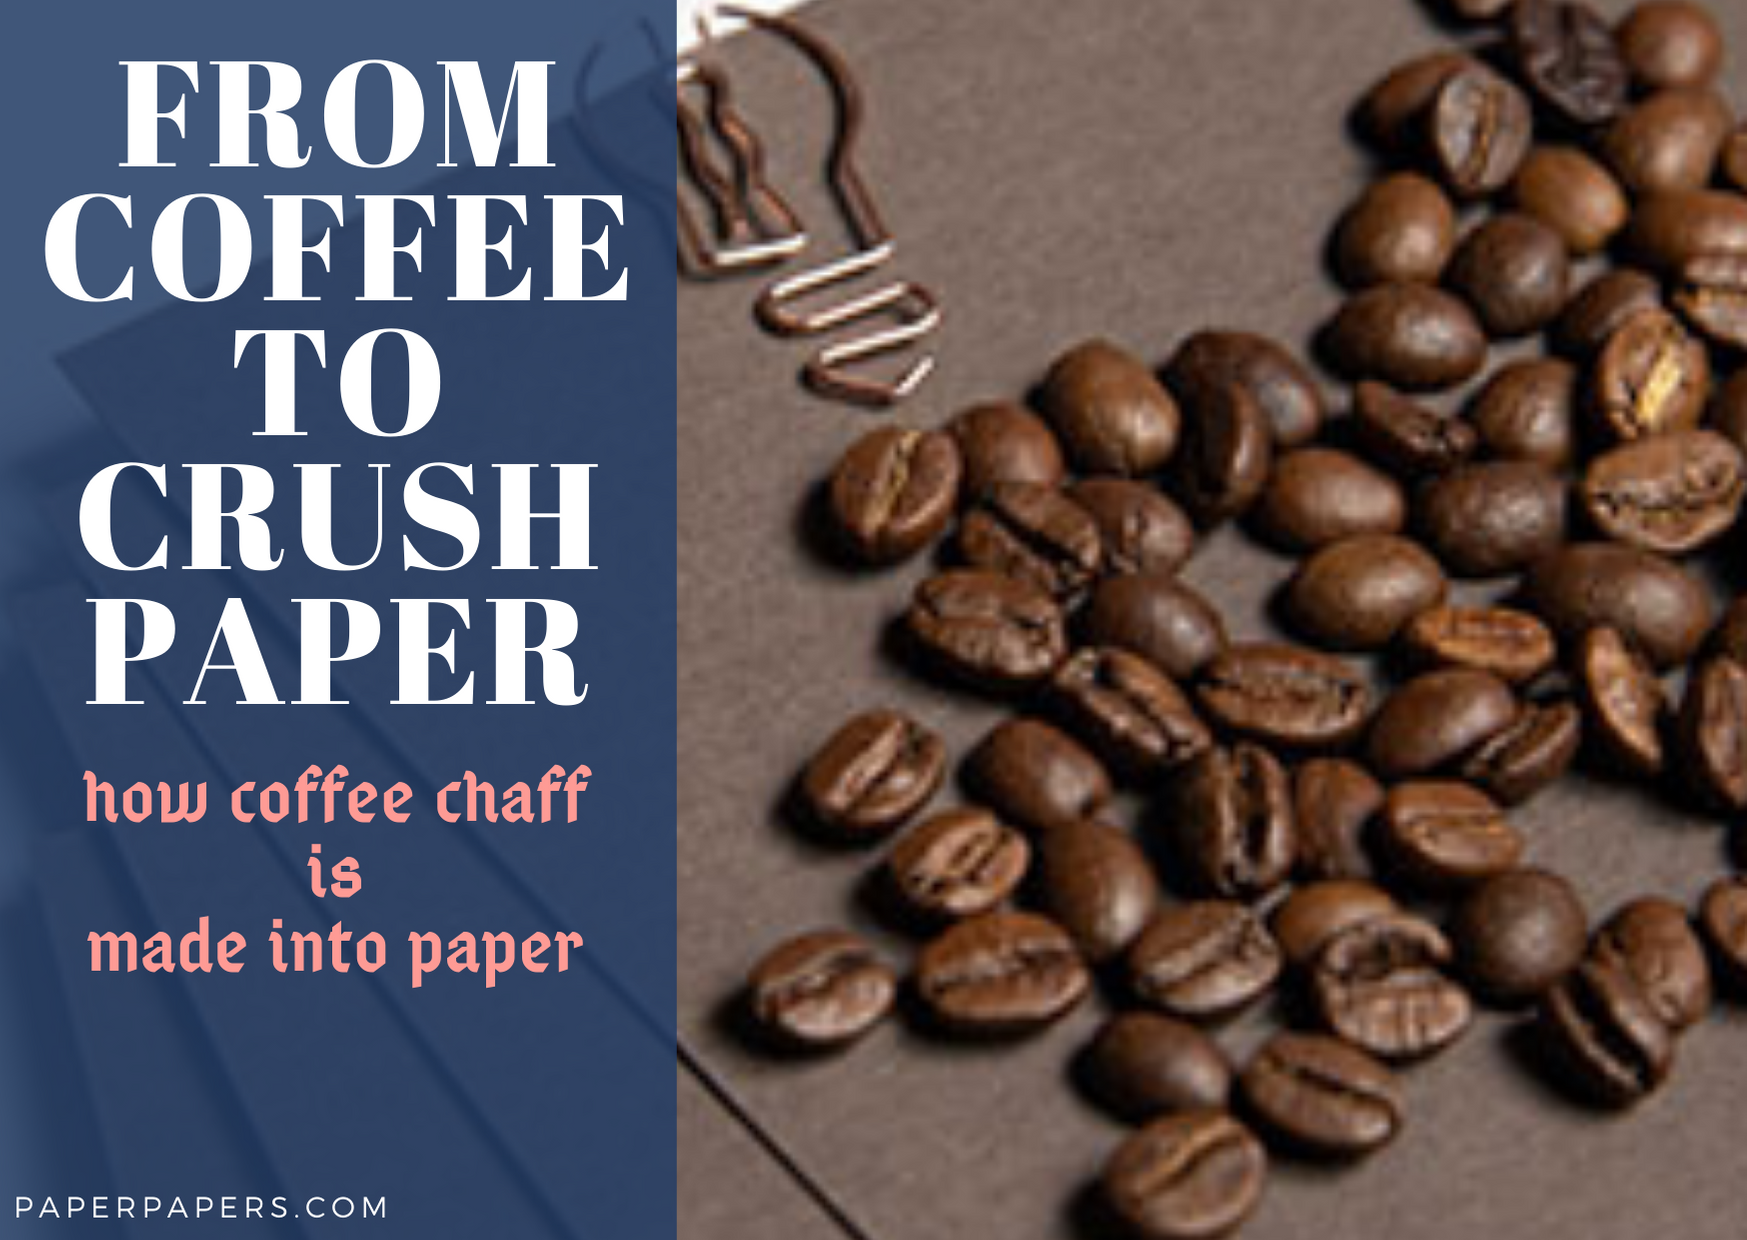 from coffee to crush paper